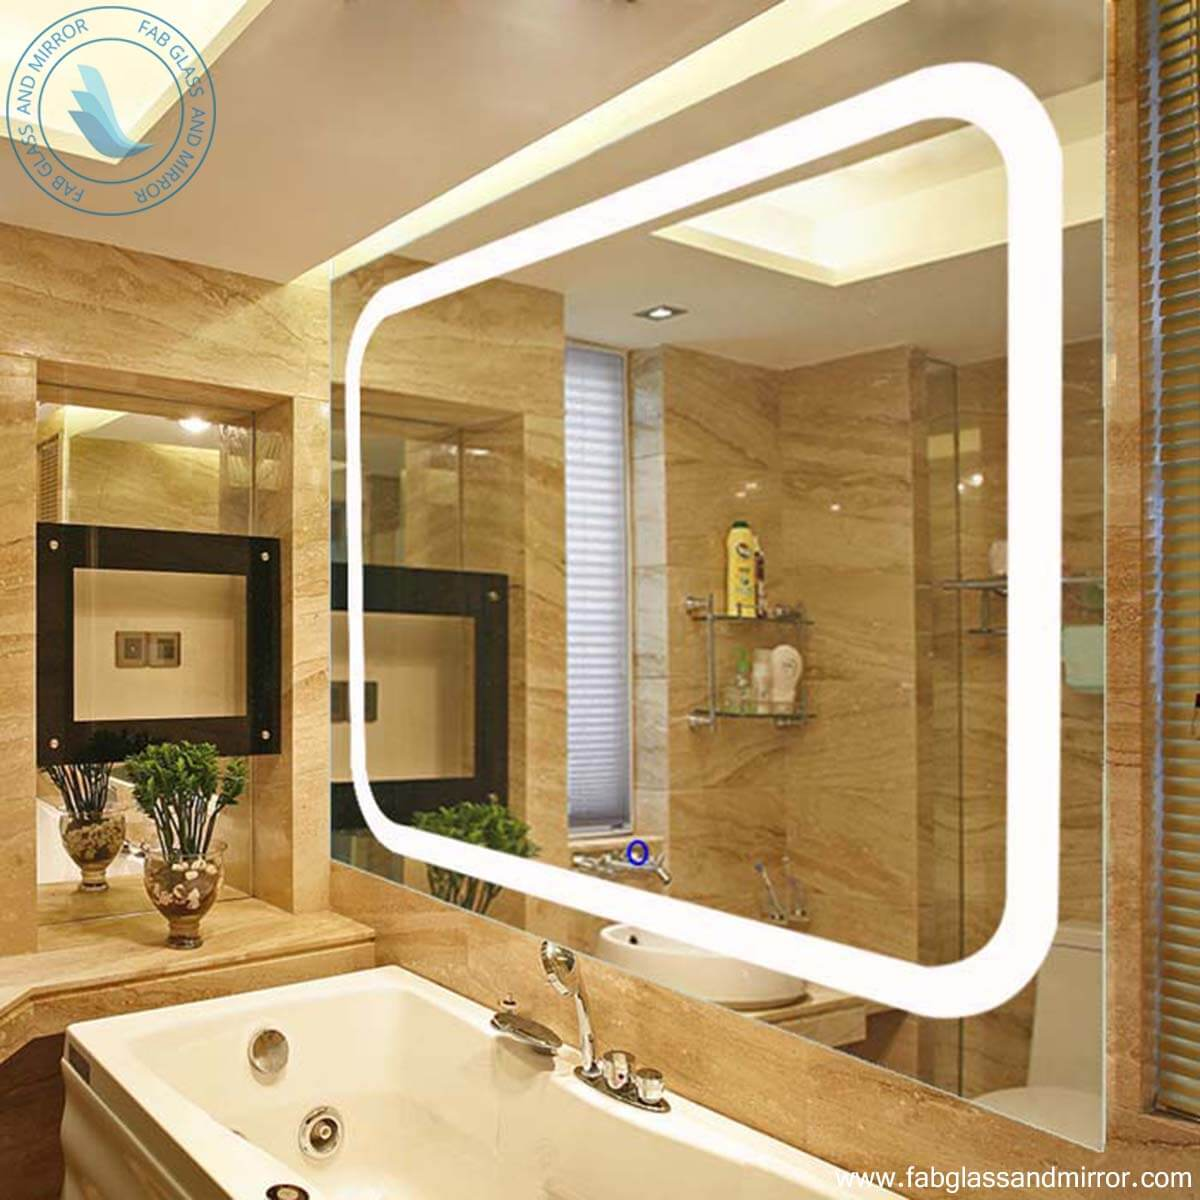 Vanity Mirrors For Bathroom Fab Glass and Mirror